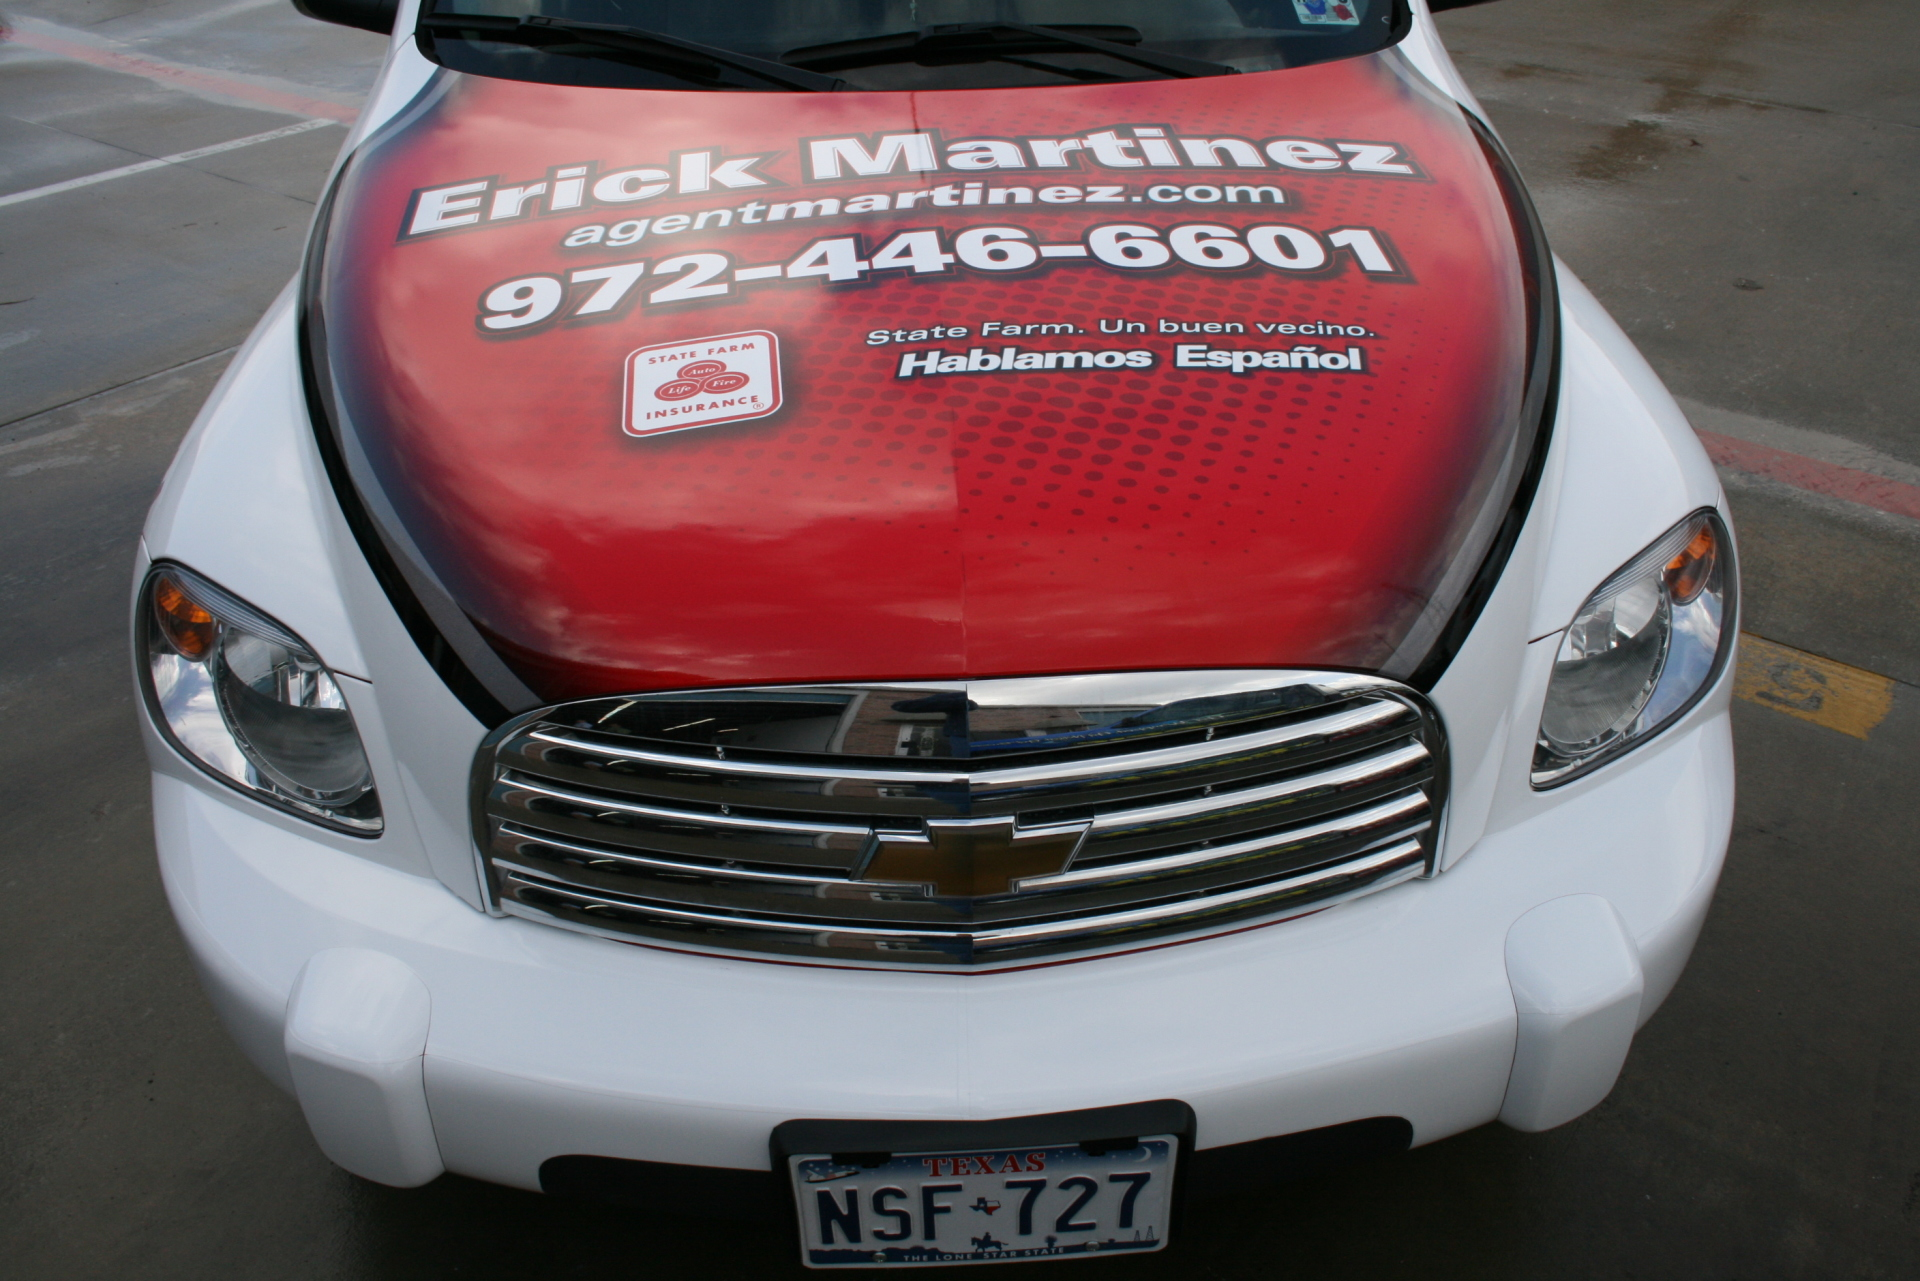 State Farm Agent Erick Martinez, State Farm Vehicle Wraps, vehicle wraps dallas tx